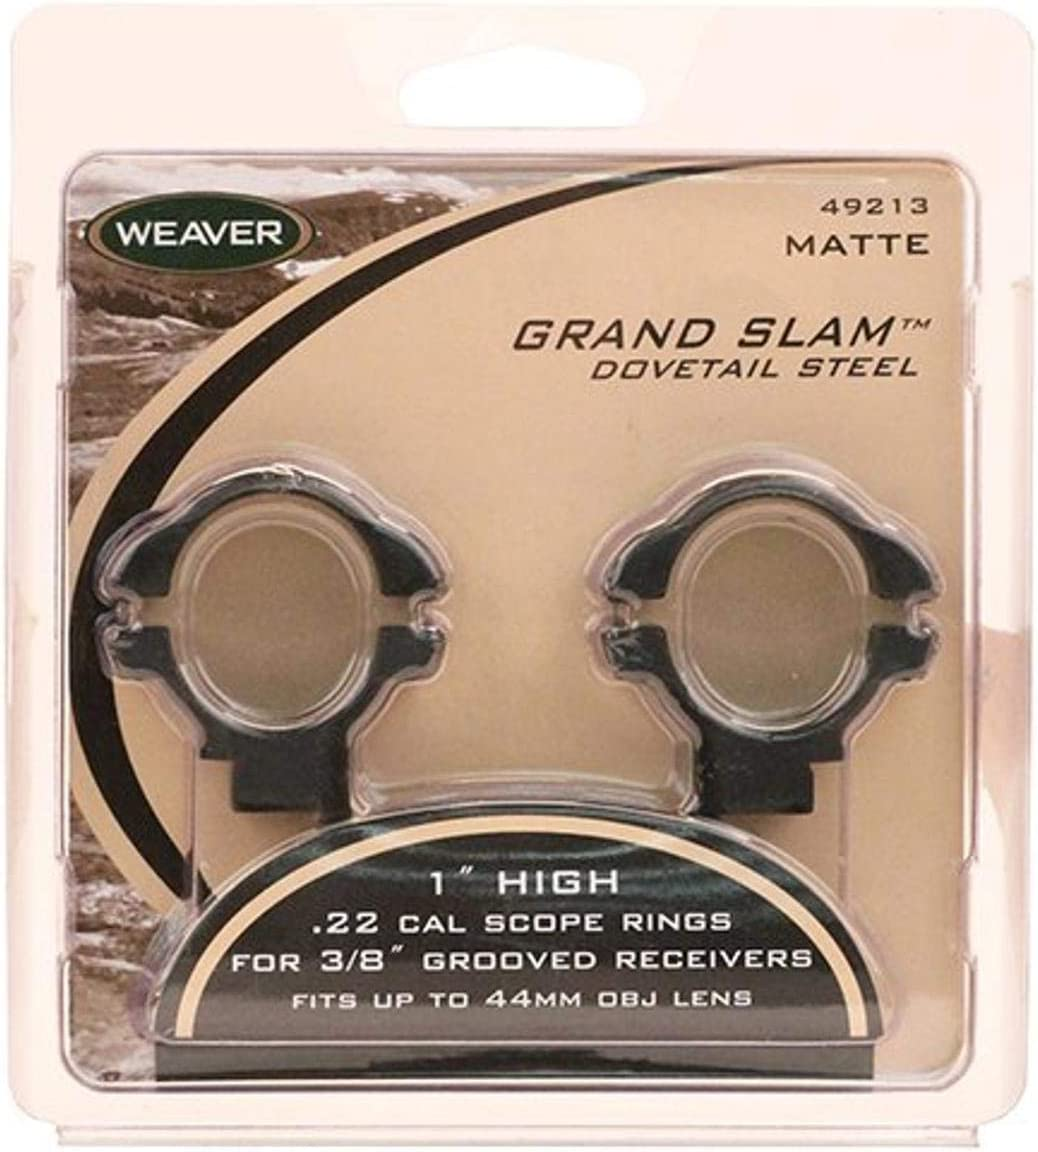 WEAVER Grand Slam 1-Inch Style High Rings .22 Popular Super sale period limited product